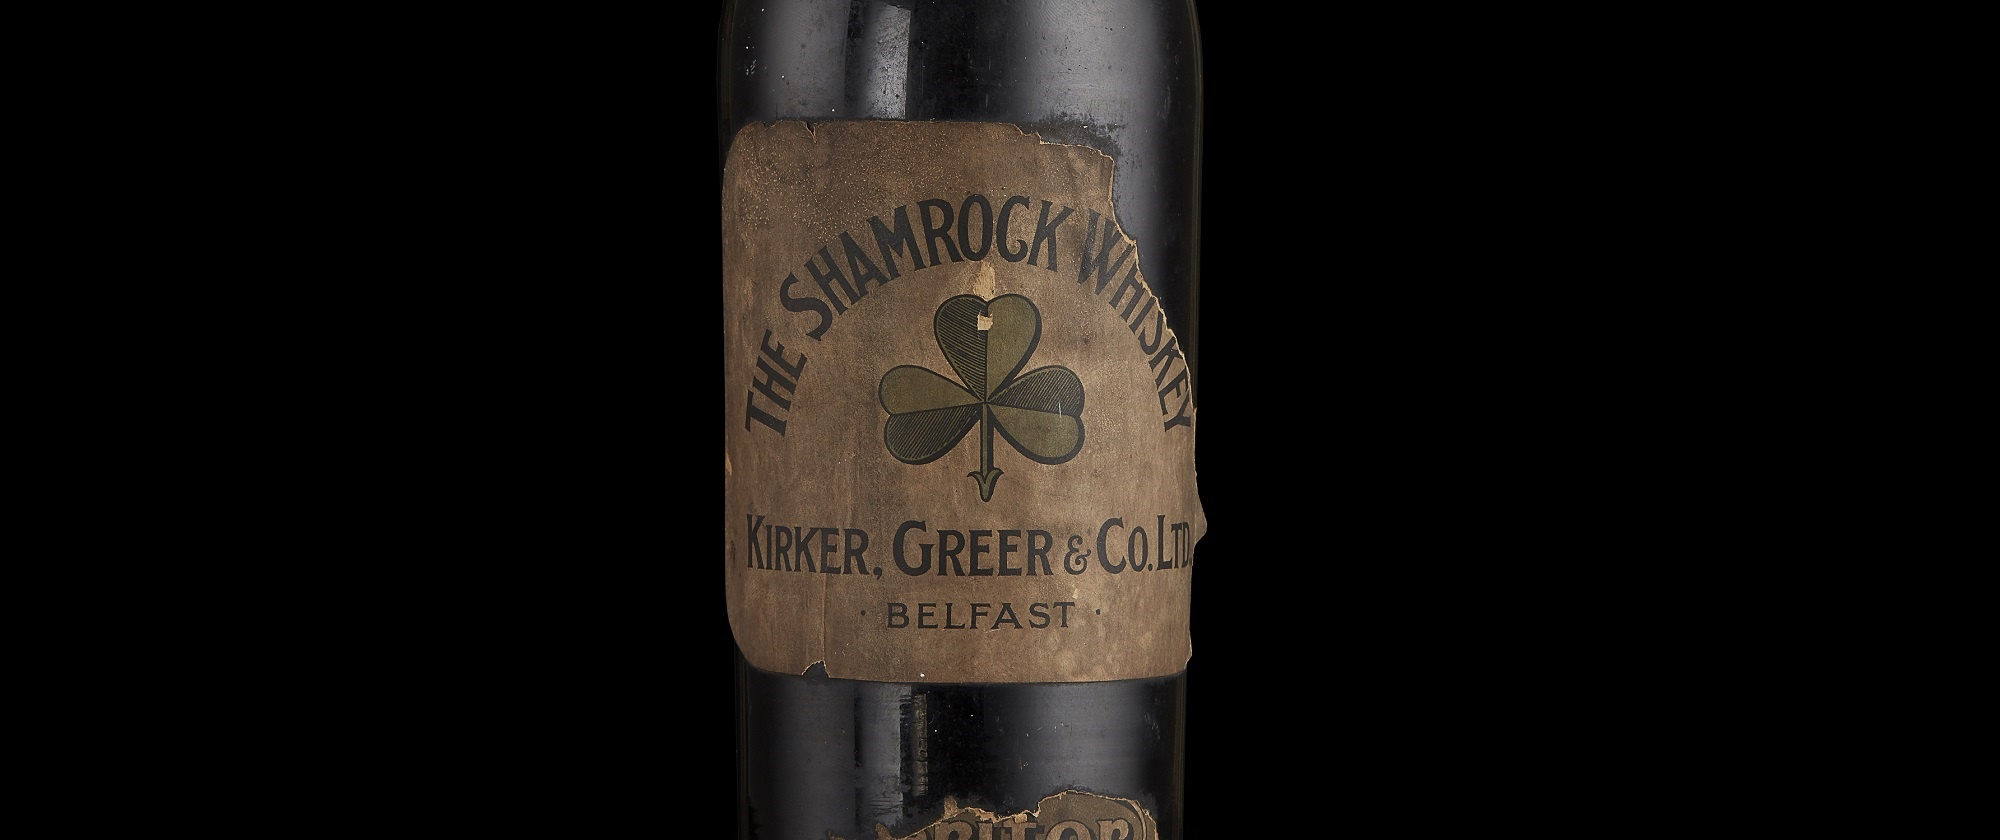 The Shamrock Whiskey